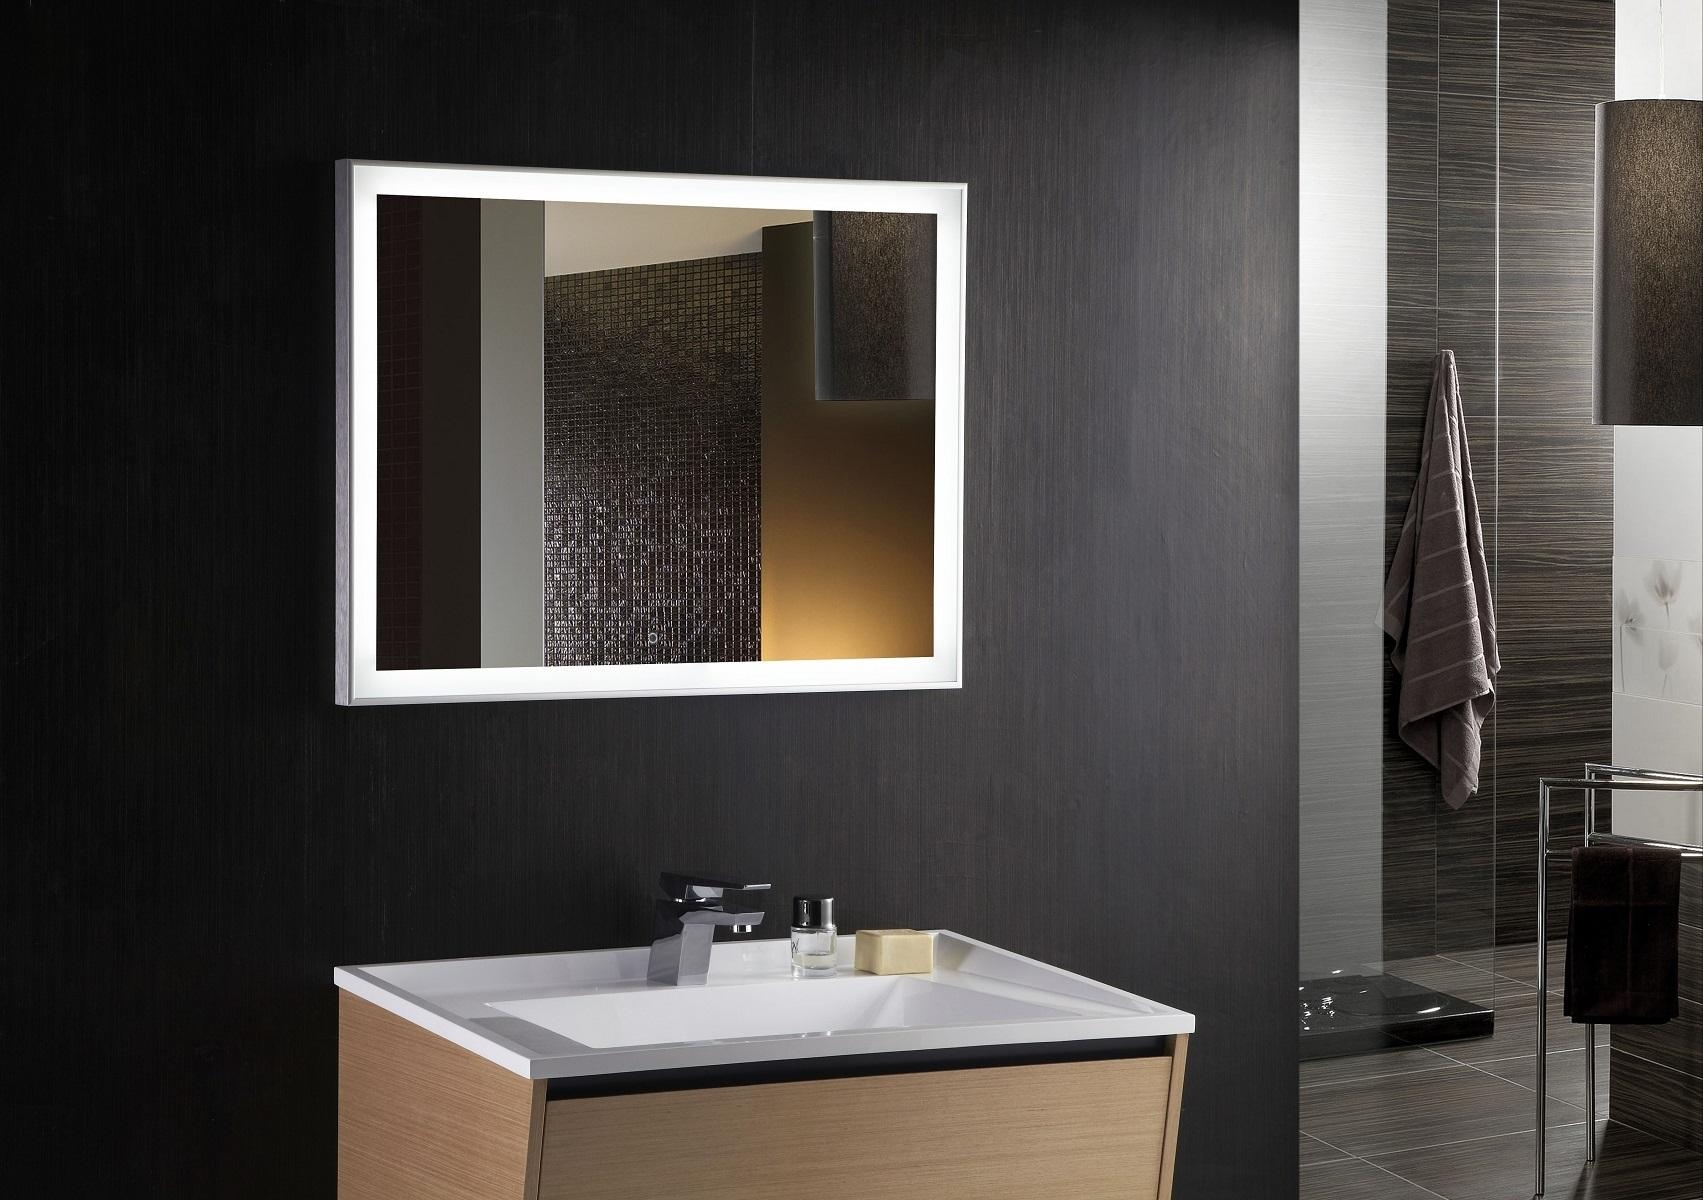 Fascinating Lighted Bathroom Mirrors Led Illuminated Mirror With Regarding Led Lit Bathroom Mirrors (Image 18 of 20)